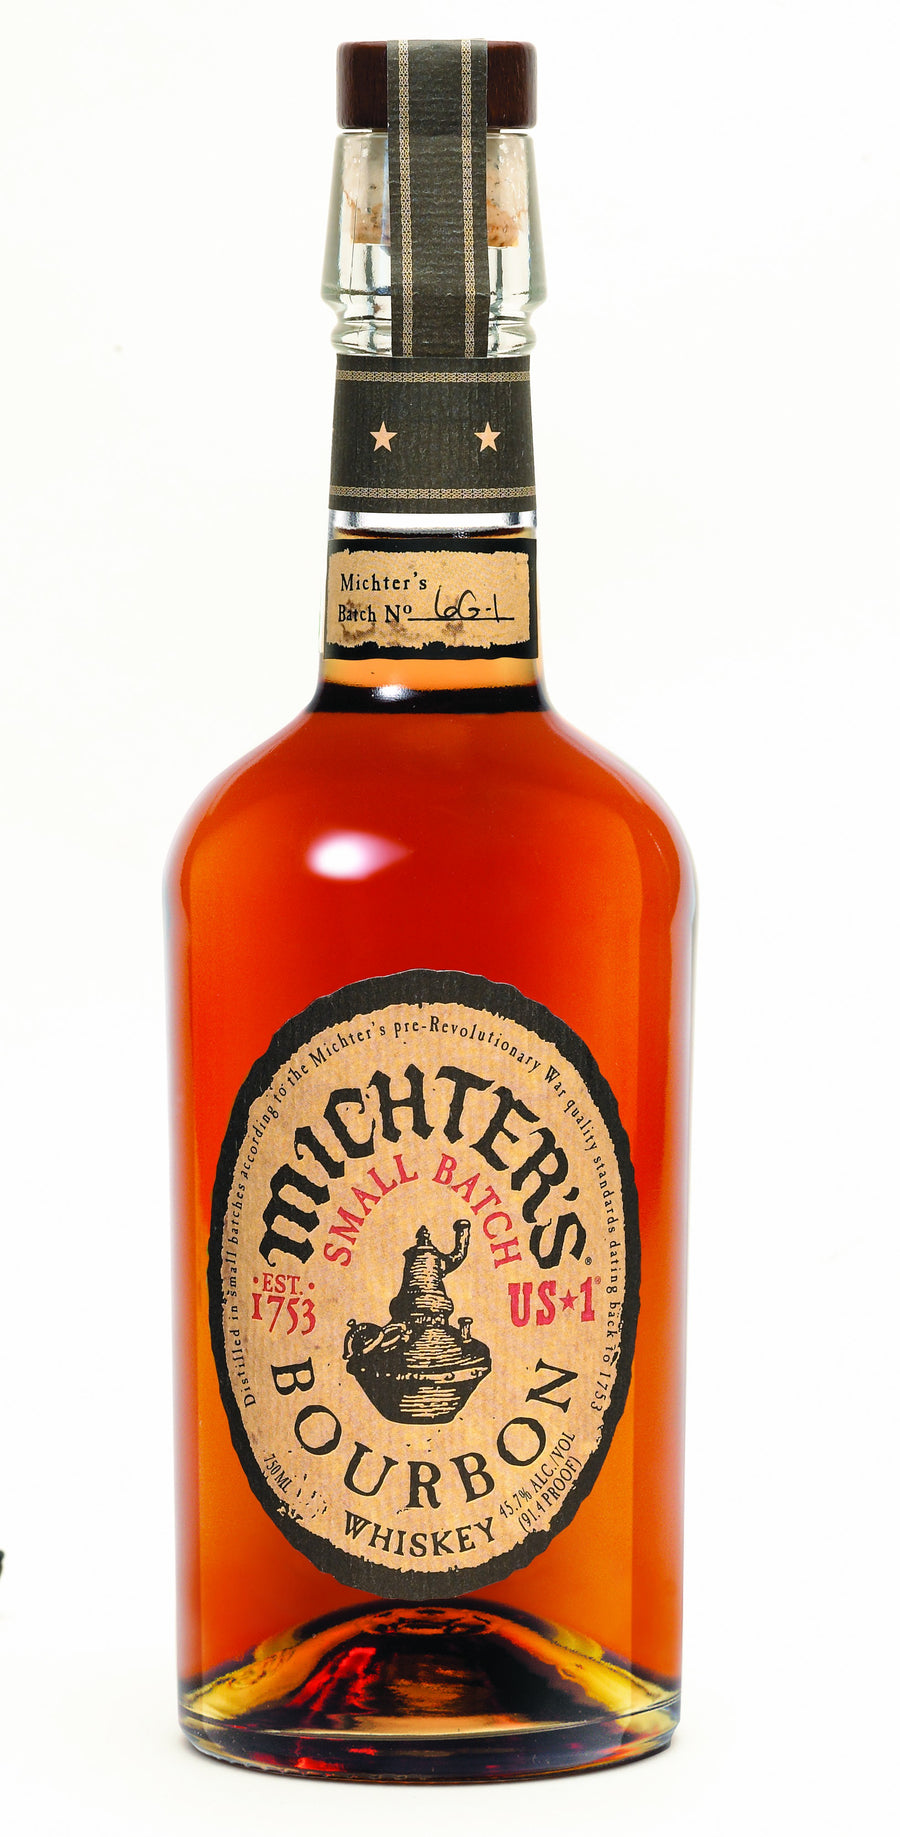 Michters Kentucky Straight Bourbon Whiskey Small Batch US-1 750 ML